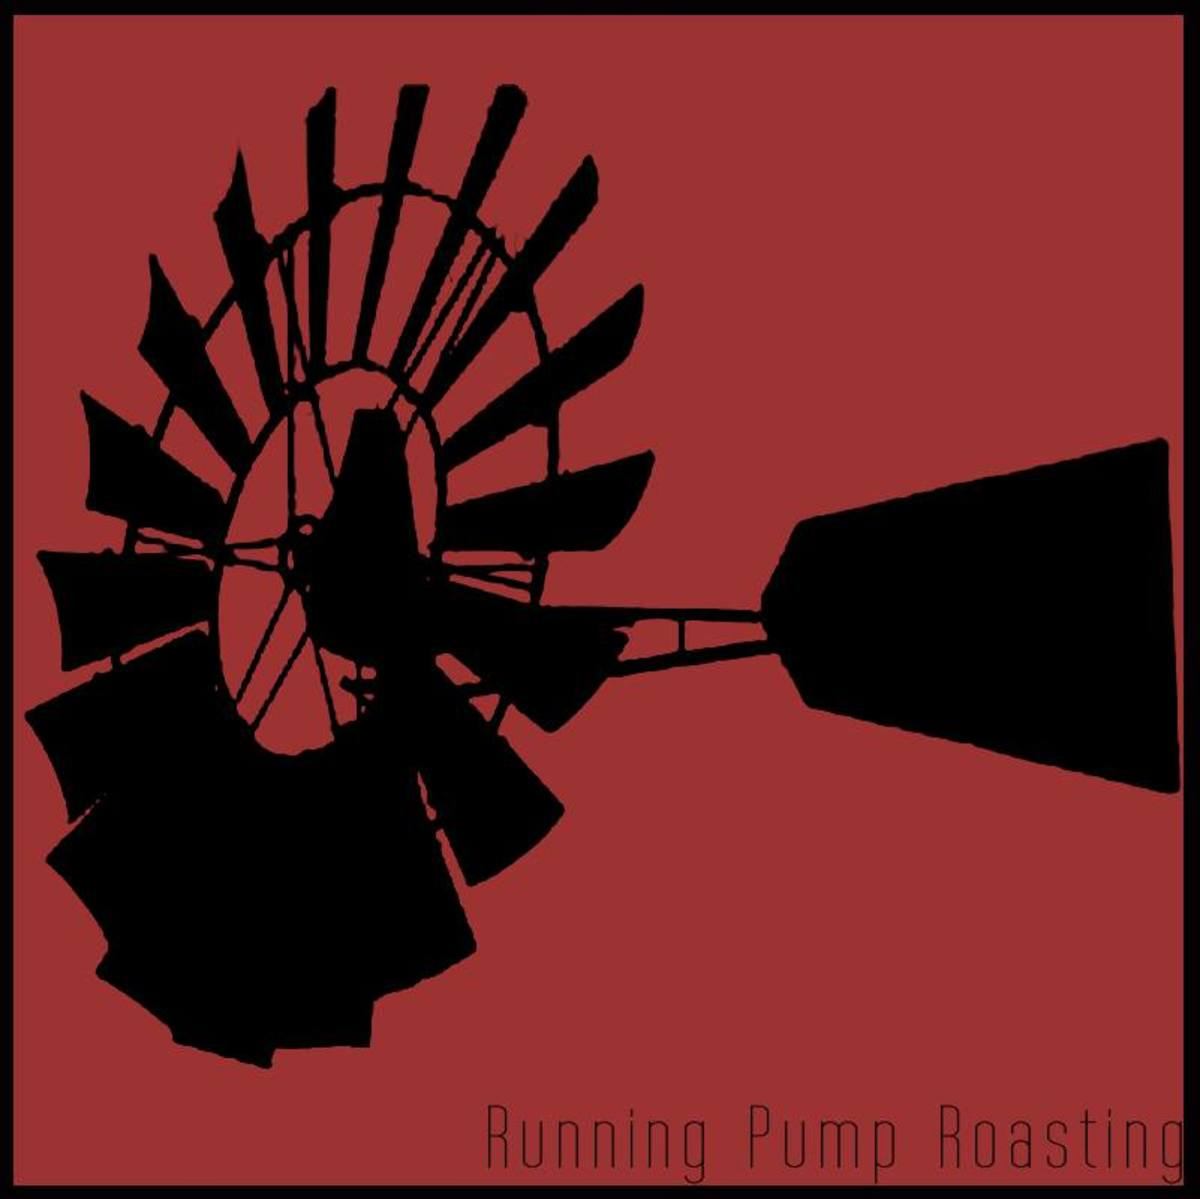 Running Pump Roasting Company